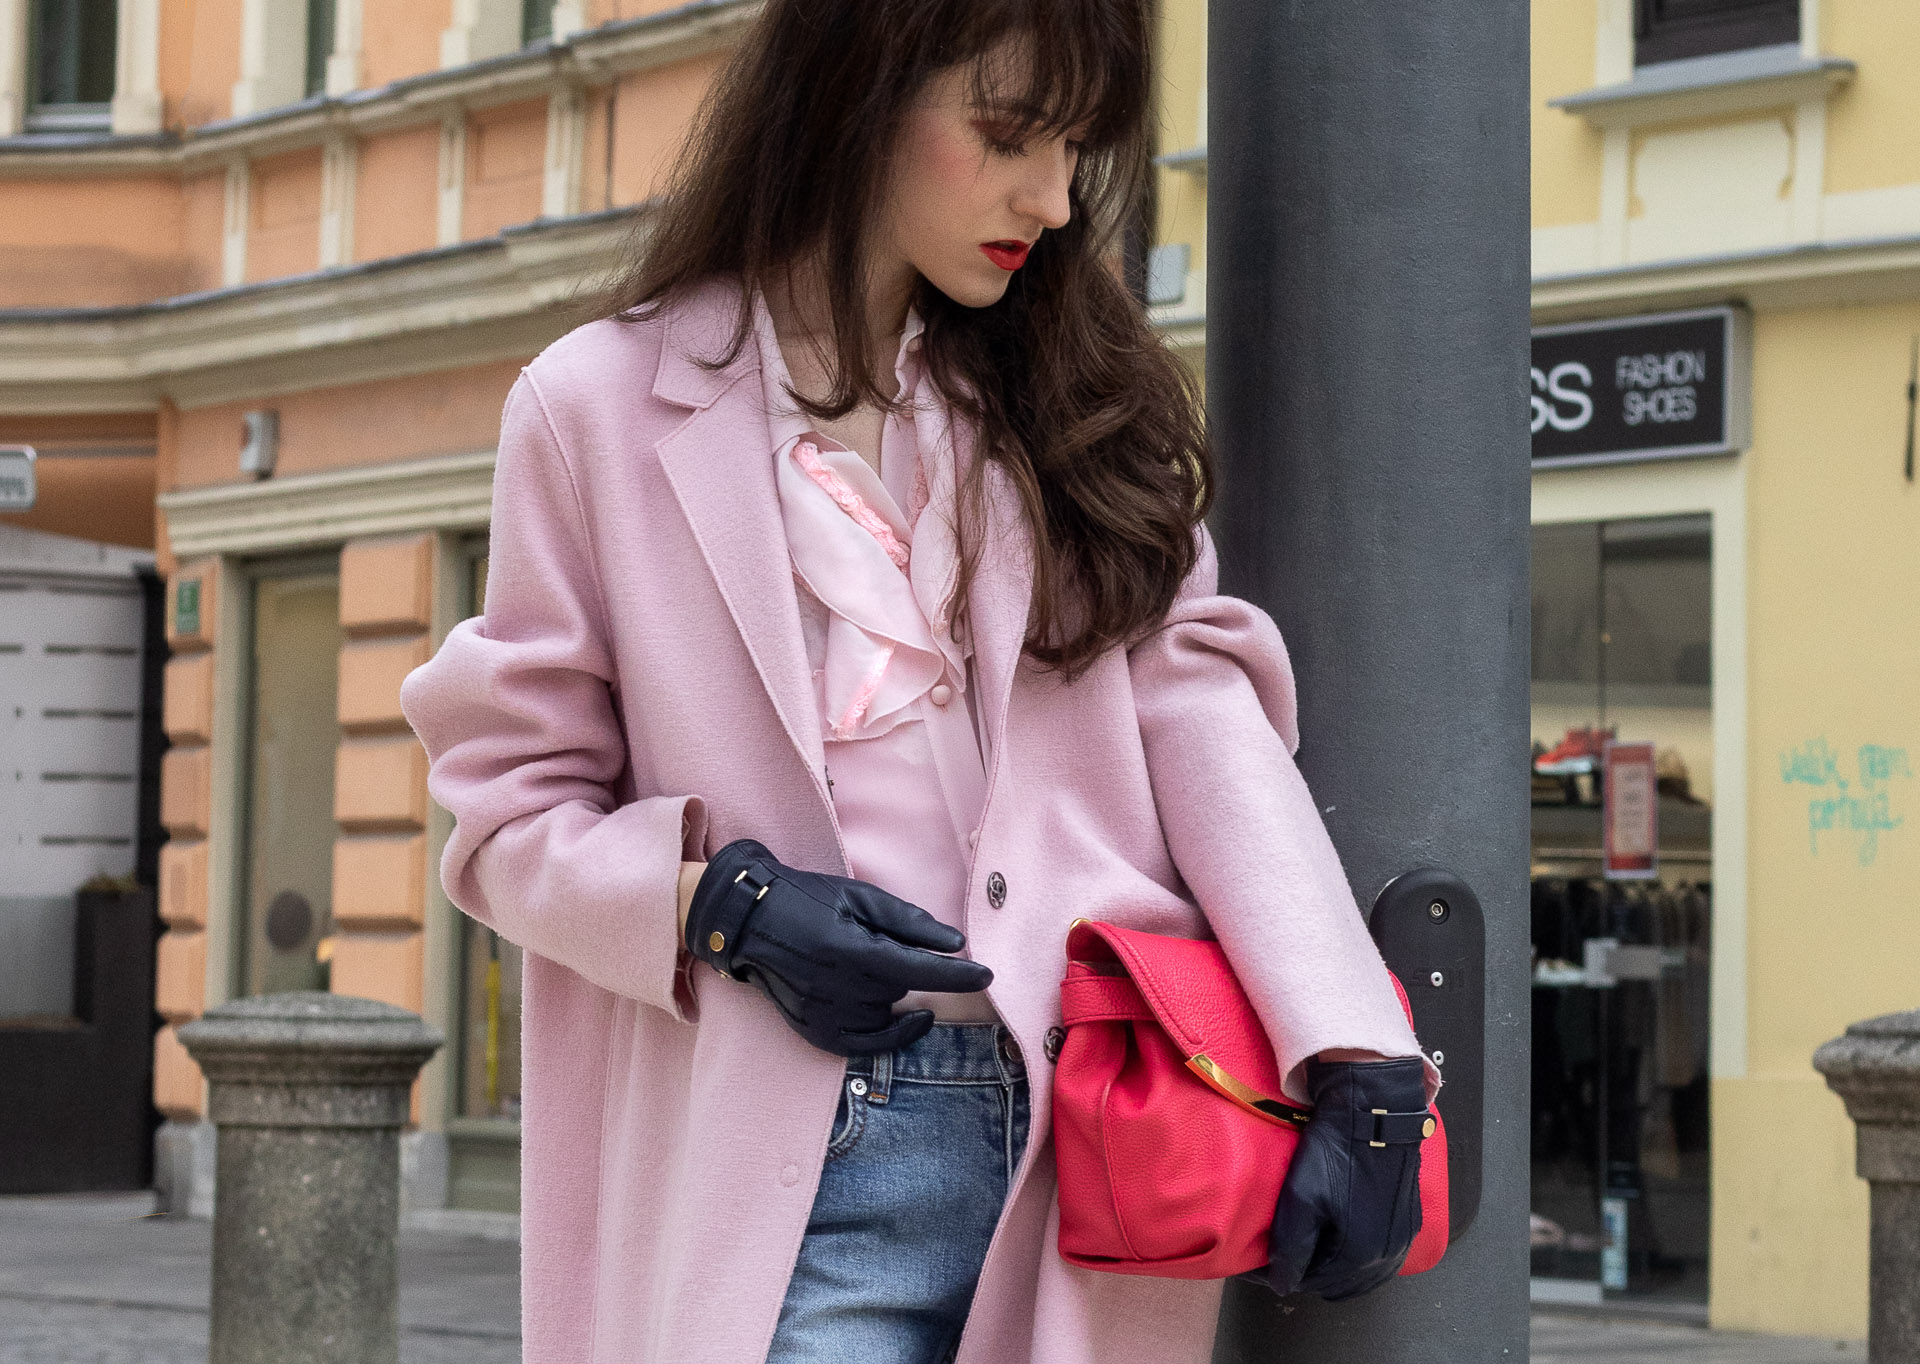 Fashion blogger Veronika Lipar of Brunette from Wall Street wearing A.P.C. blue jeans Harris Wharf London pink coat Red Valentino pink blouse pink pouch bag leather gloves